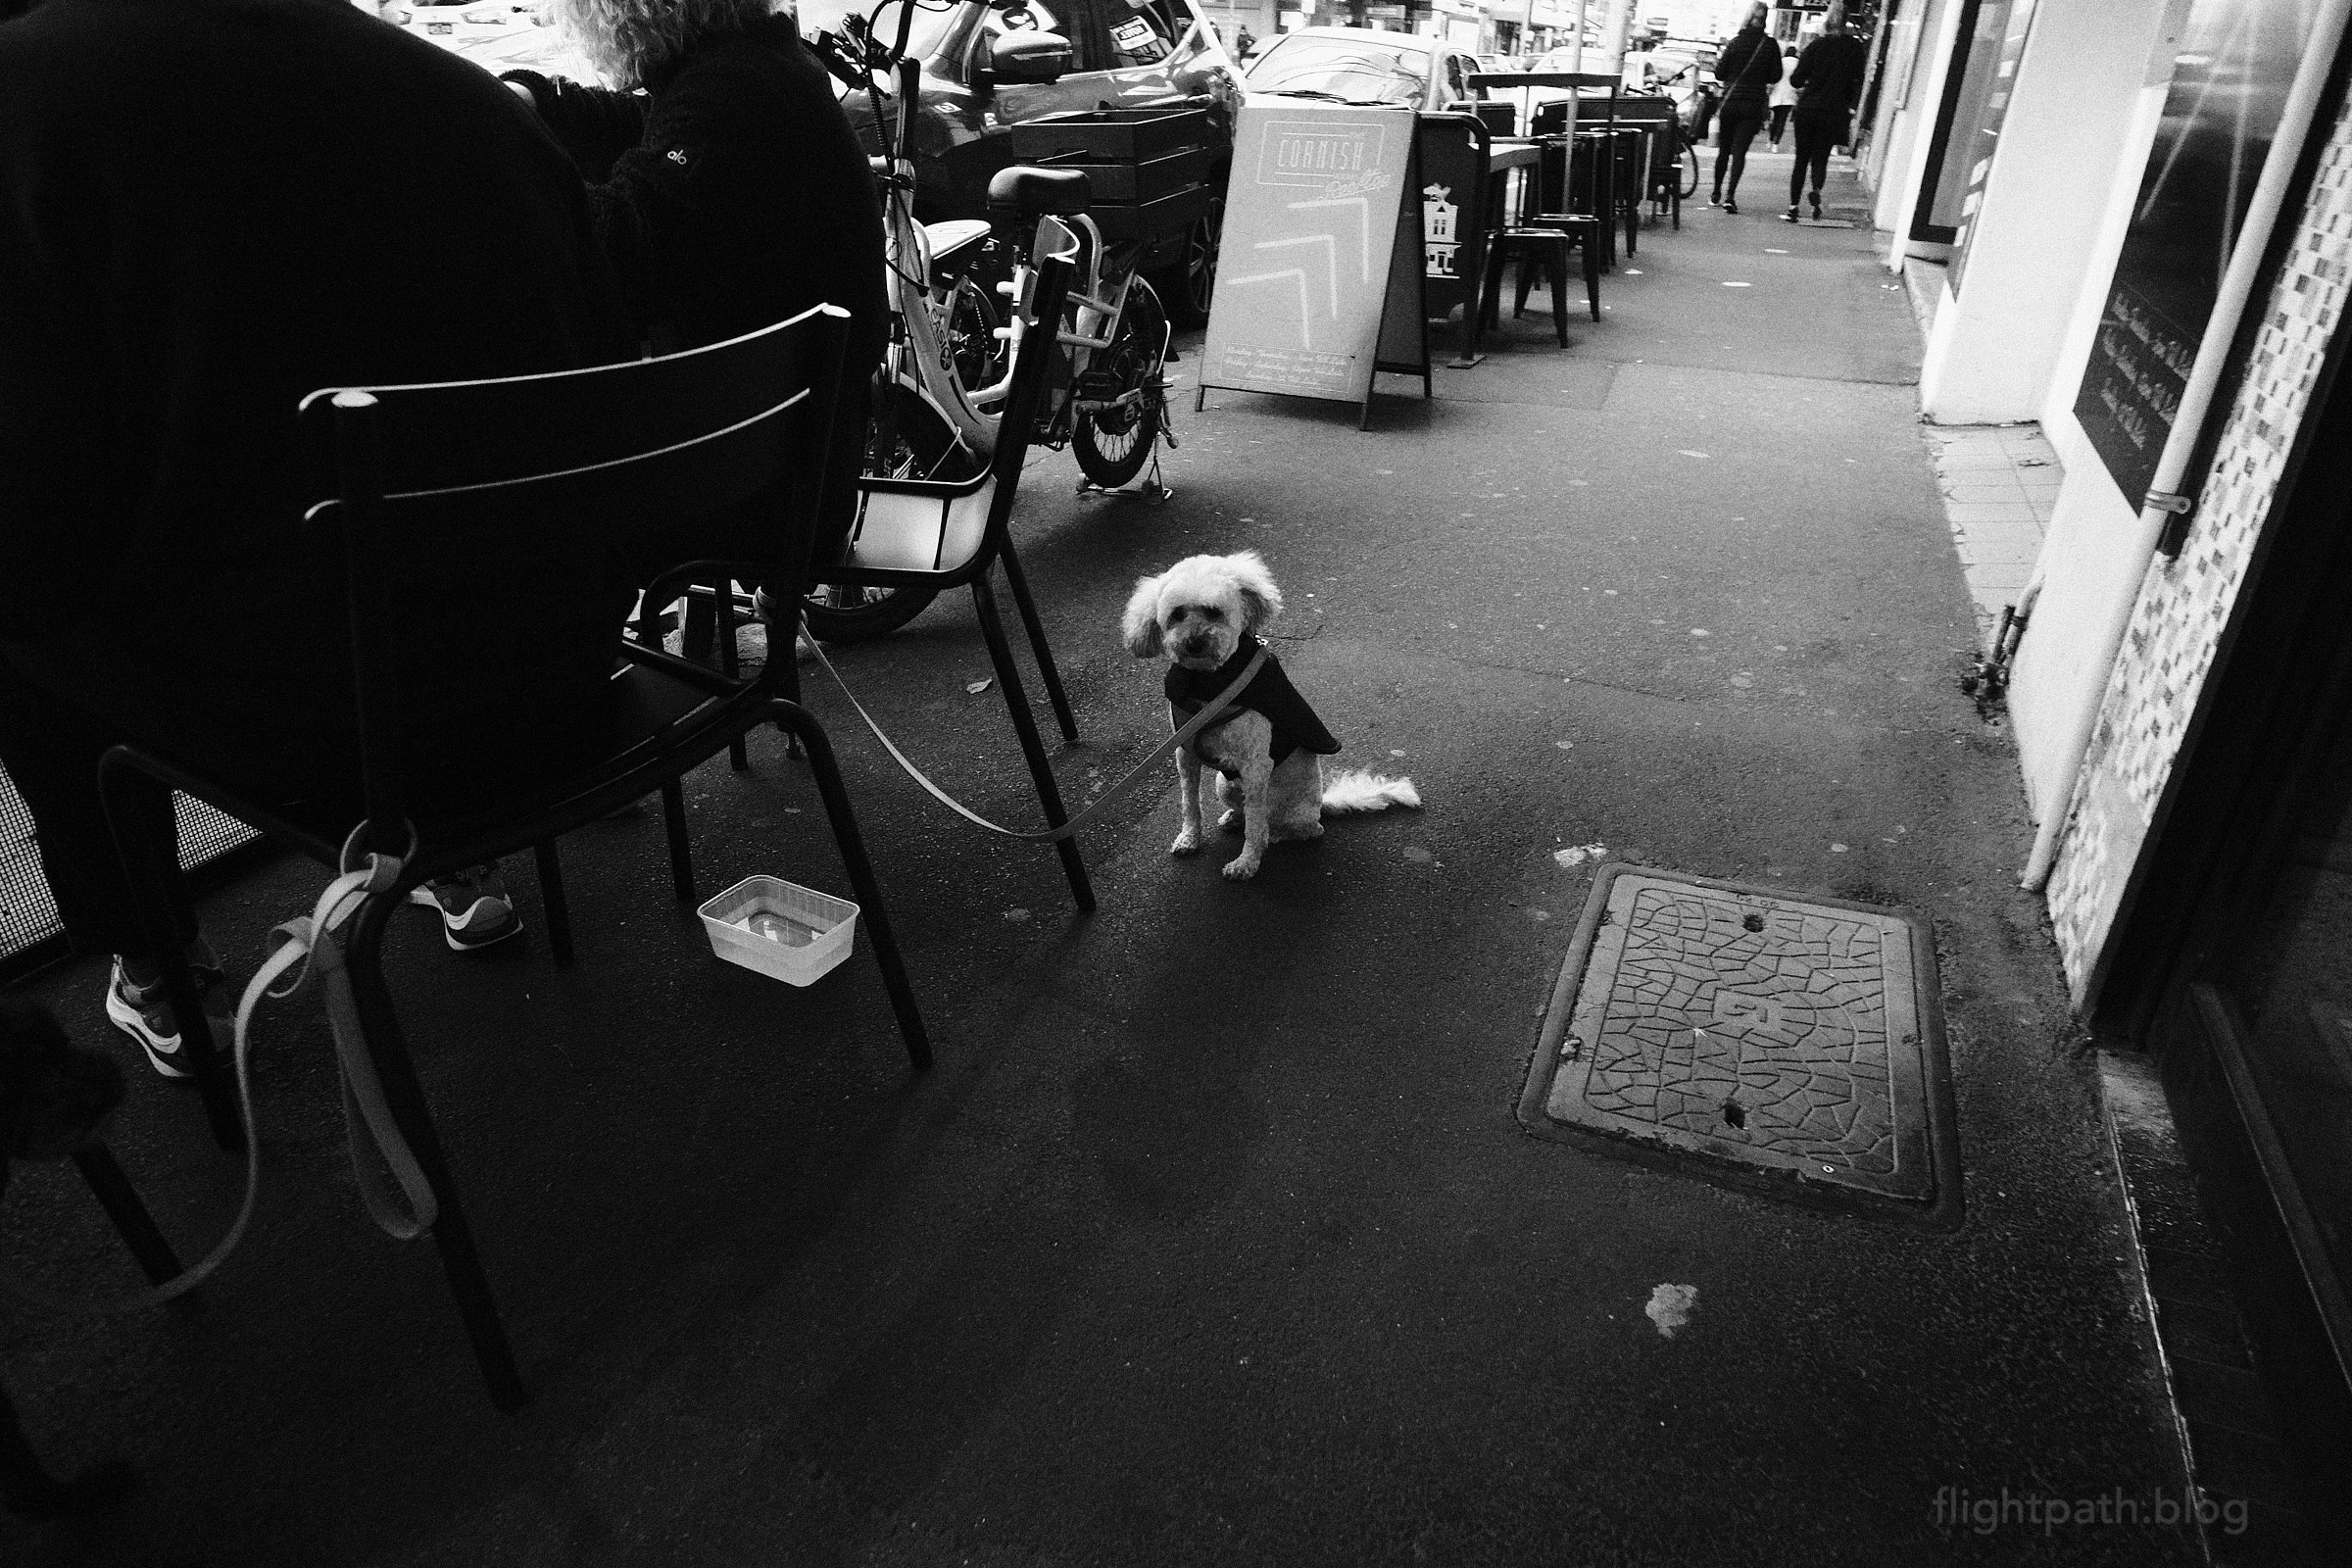 A small fluffy dog wearing a coat sits comically on the footpath beside its owners, who are seated and eating a meal. A sign board in the background points the way to the rooftop.